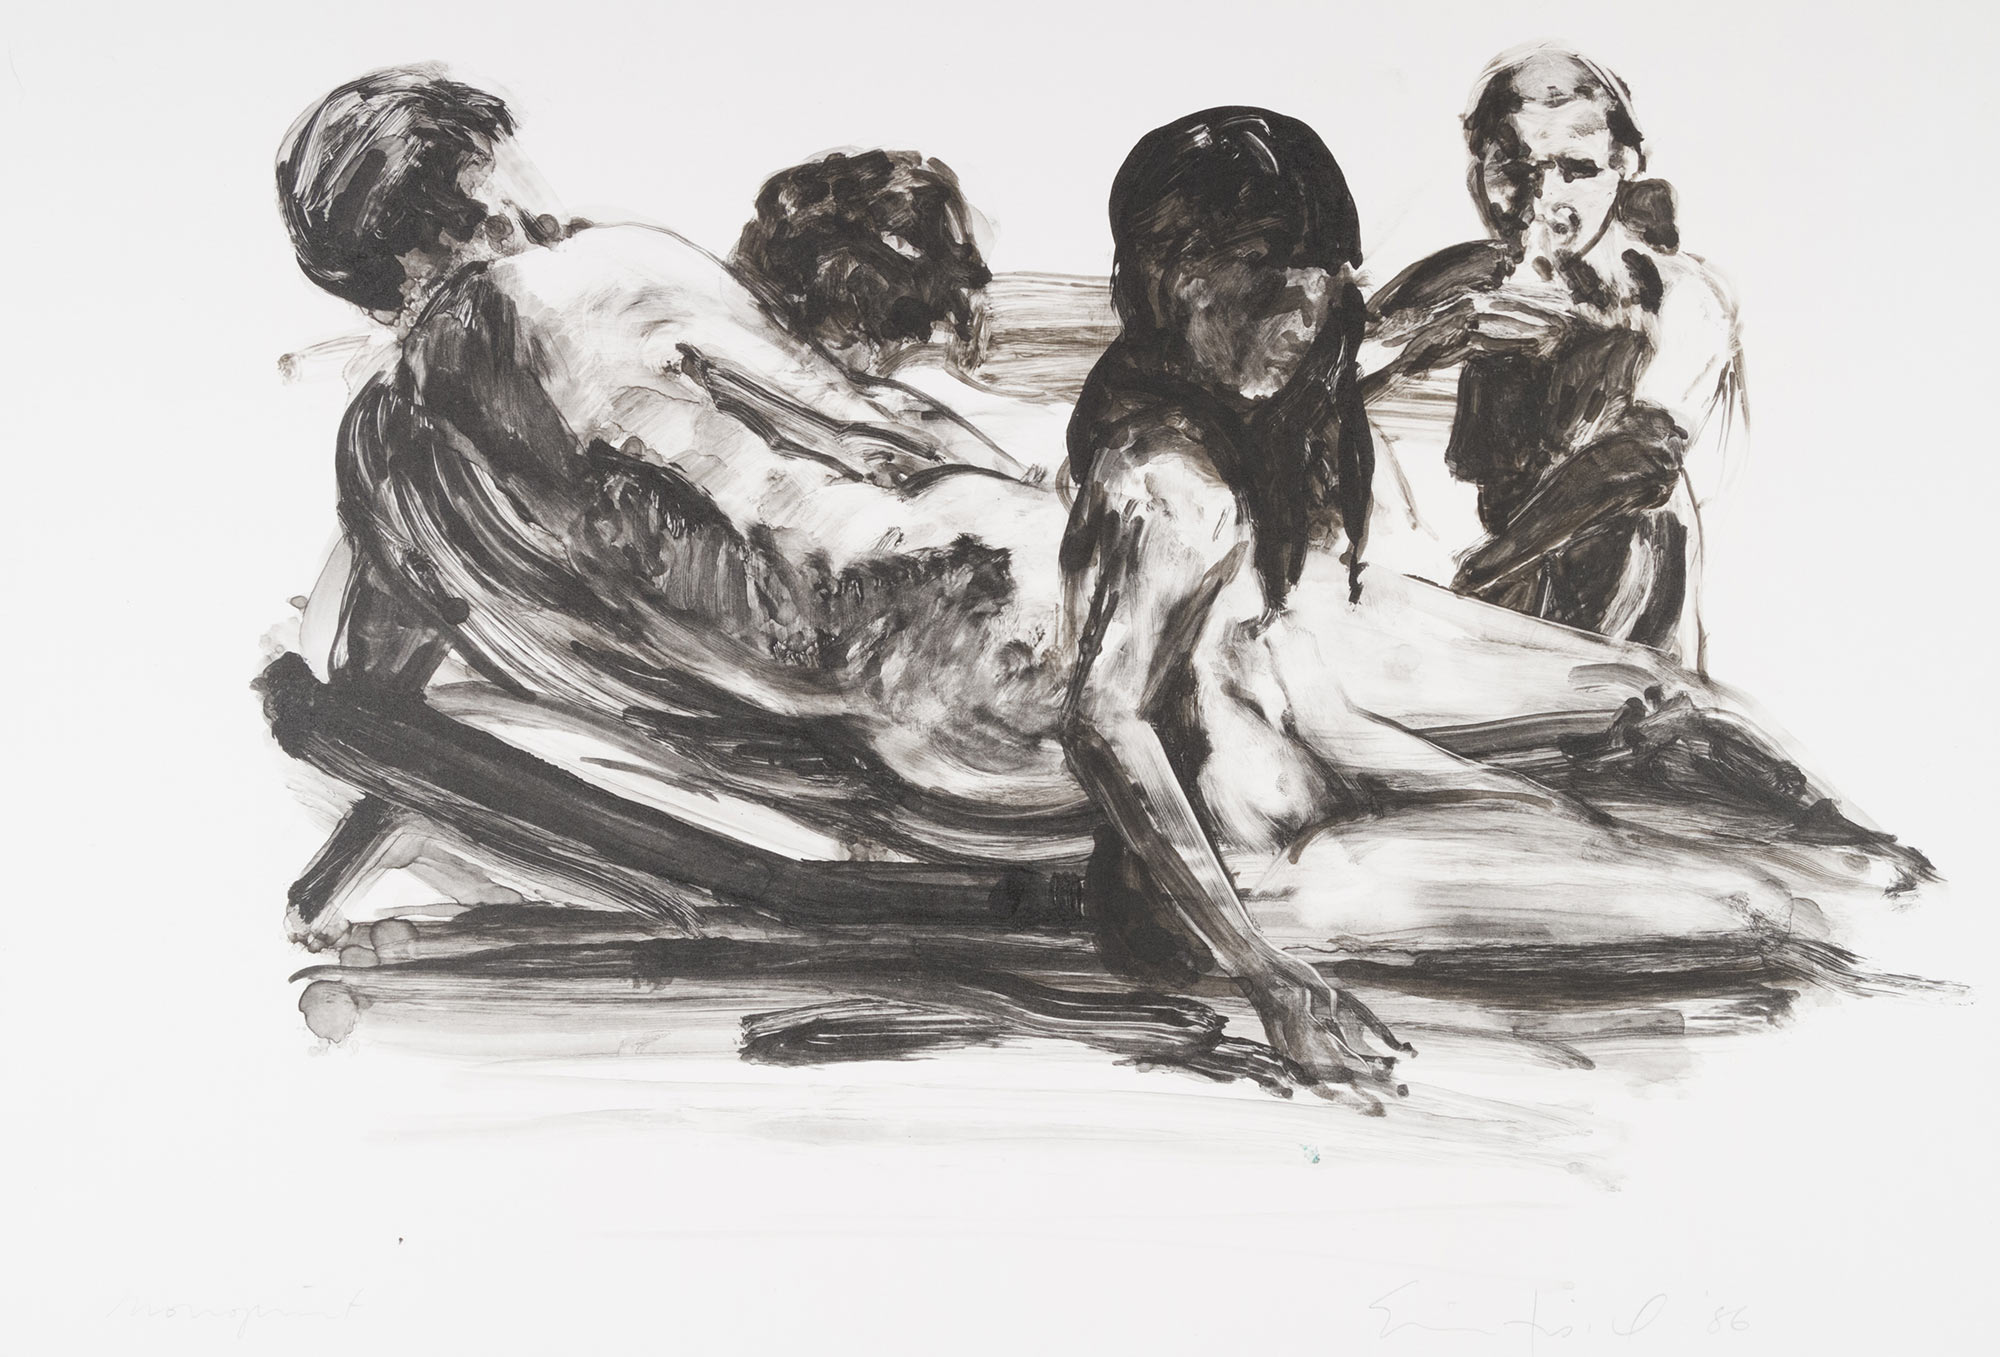 Scenes and Sequences: Seated Figures on a Beach, 1986.